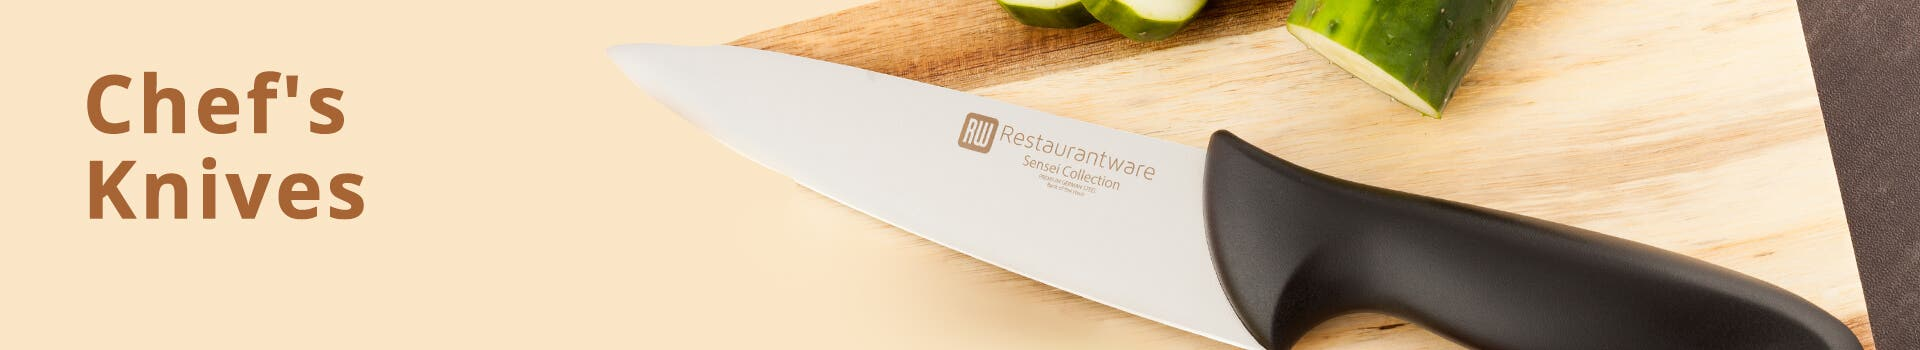 Stainless Steel Chef's Knives